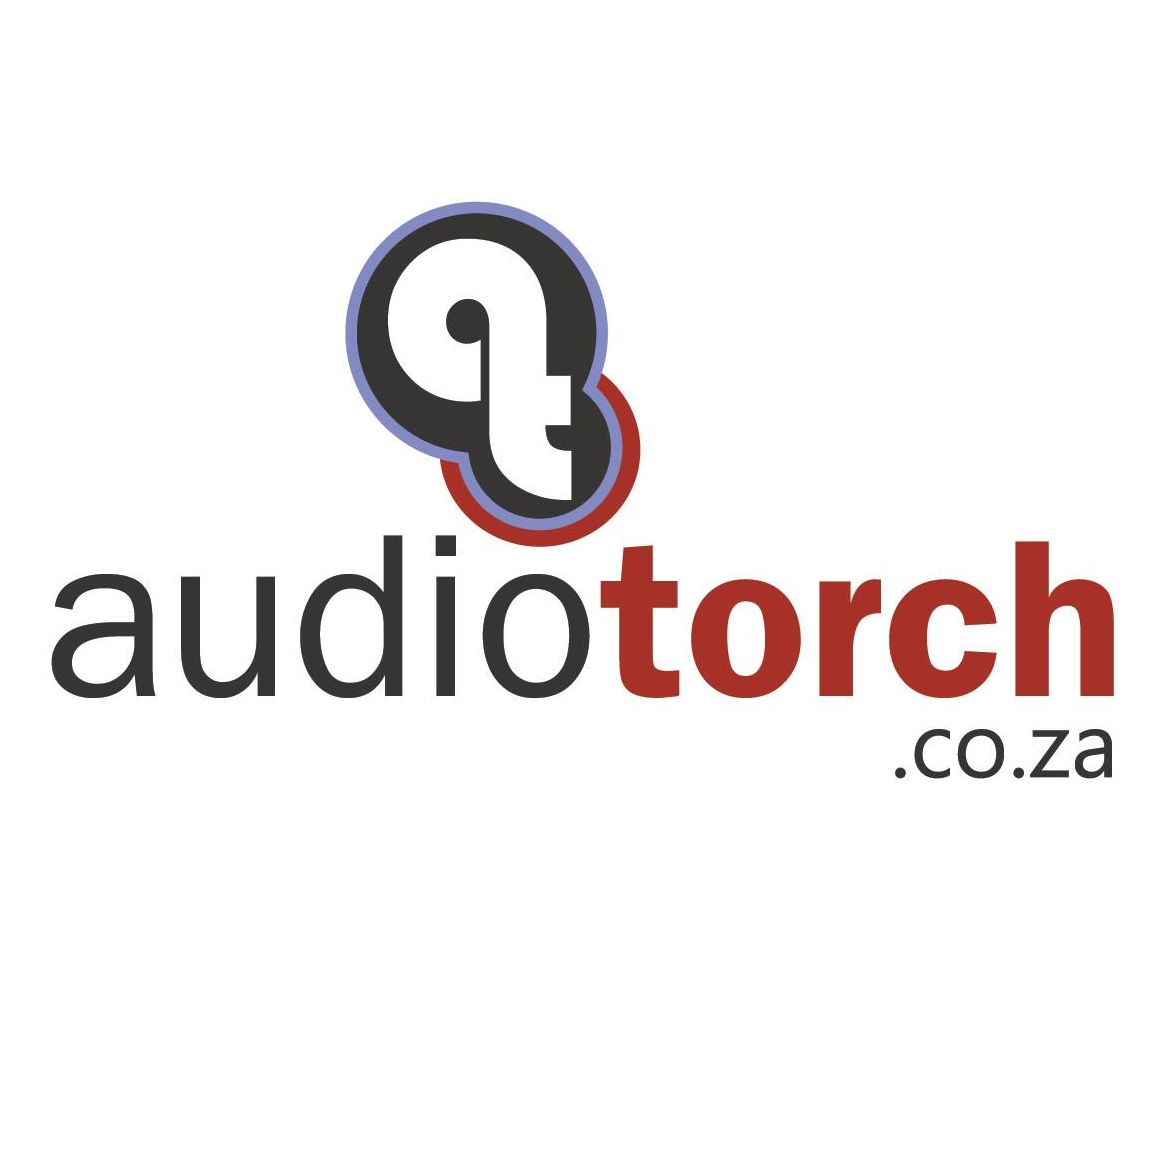 Audiotorch